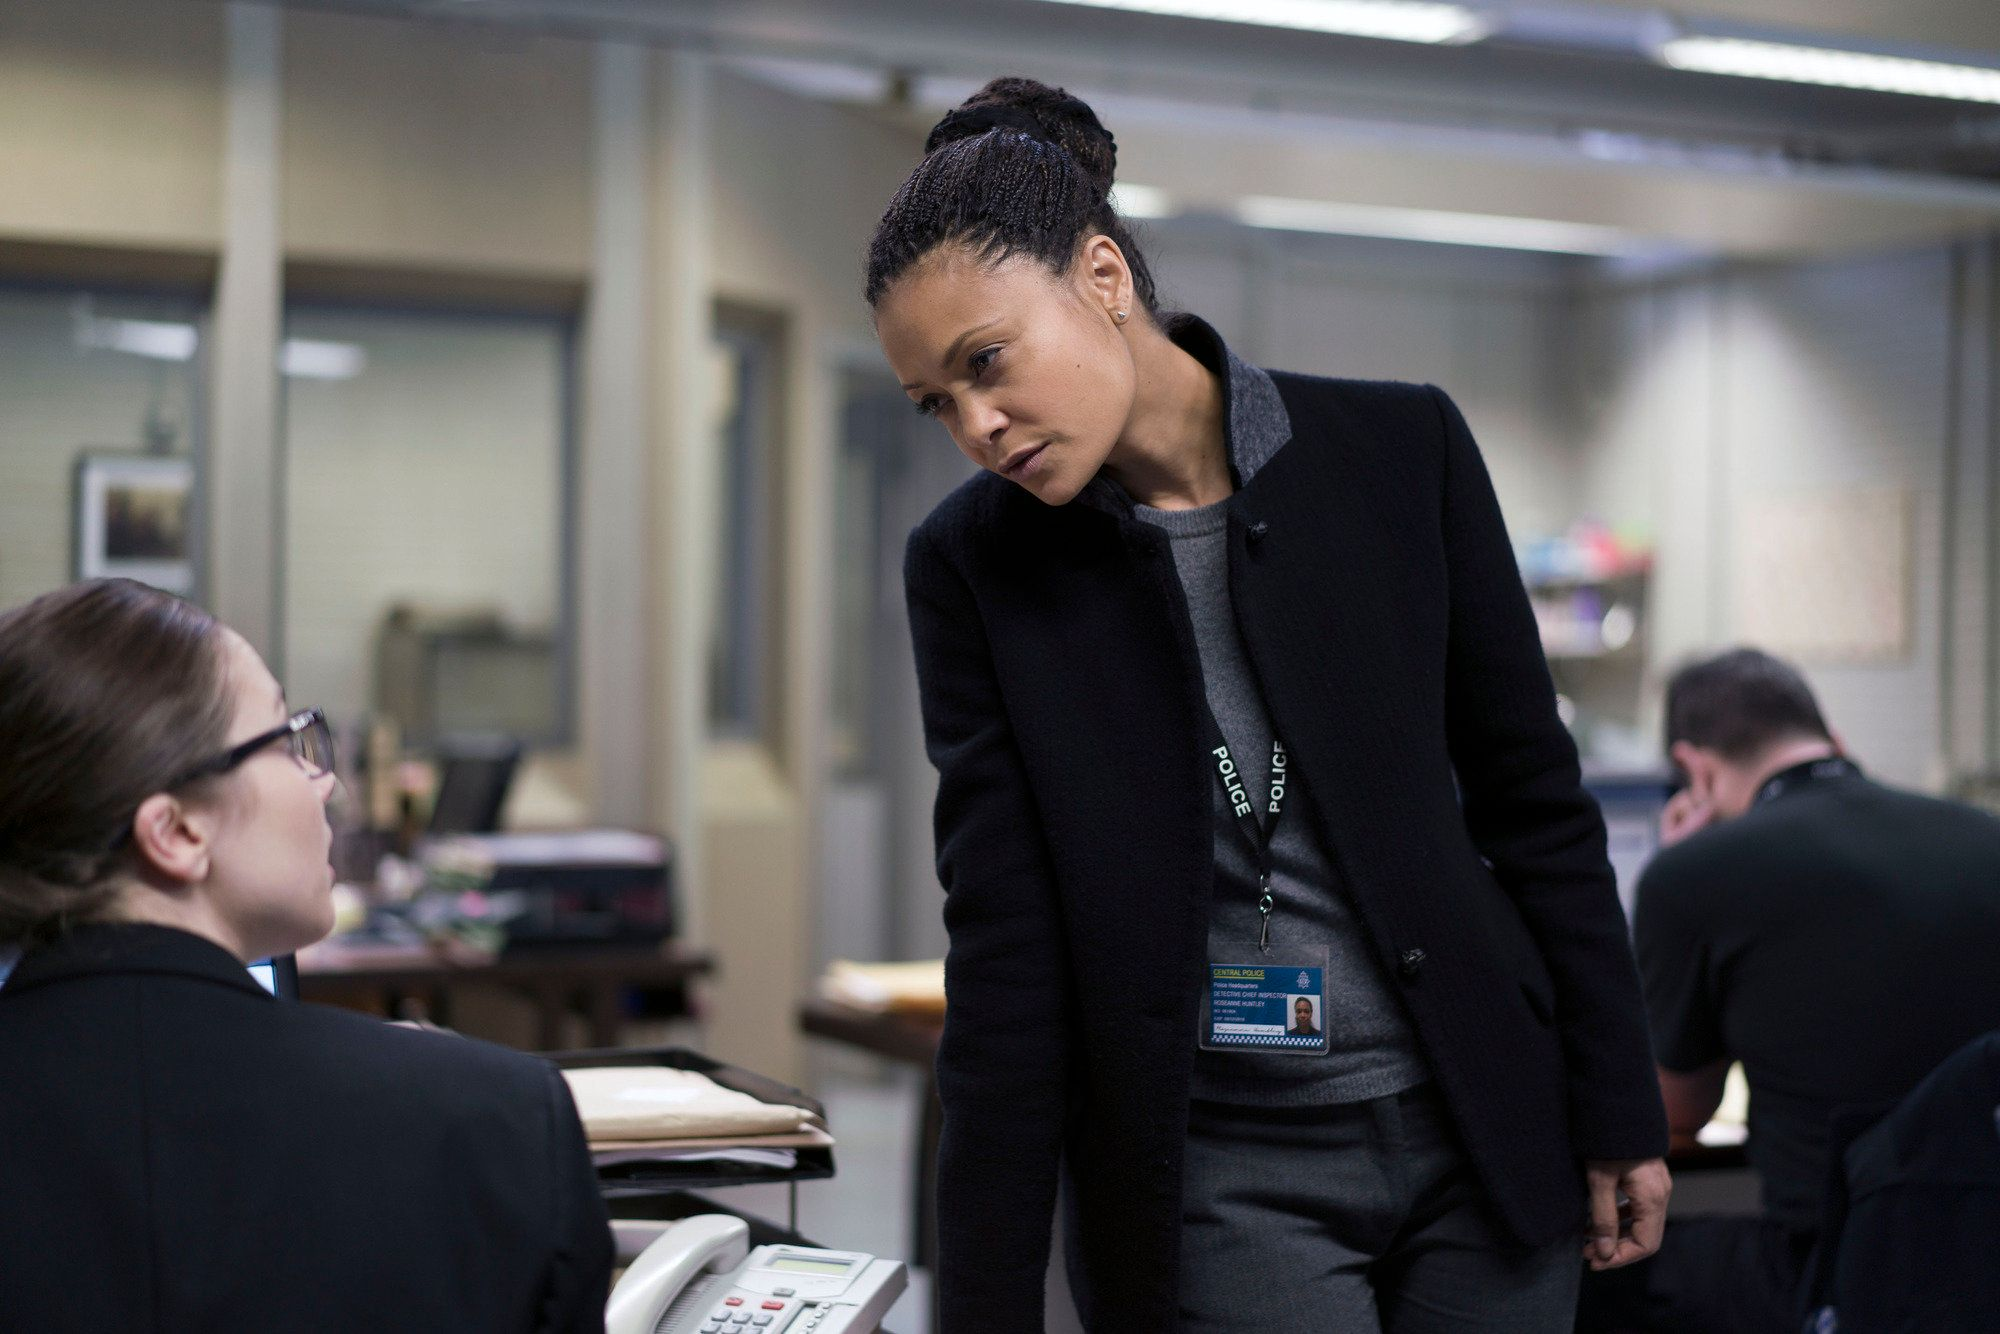 11 Burning Questions We Have After 'Line Of Duty' Episode